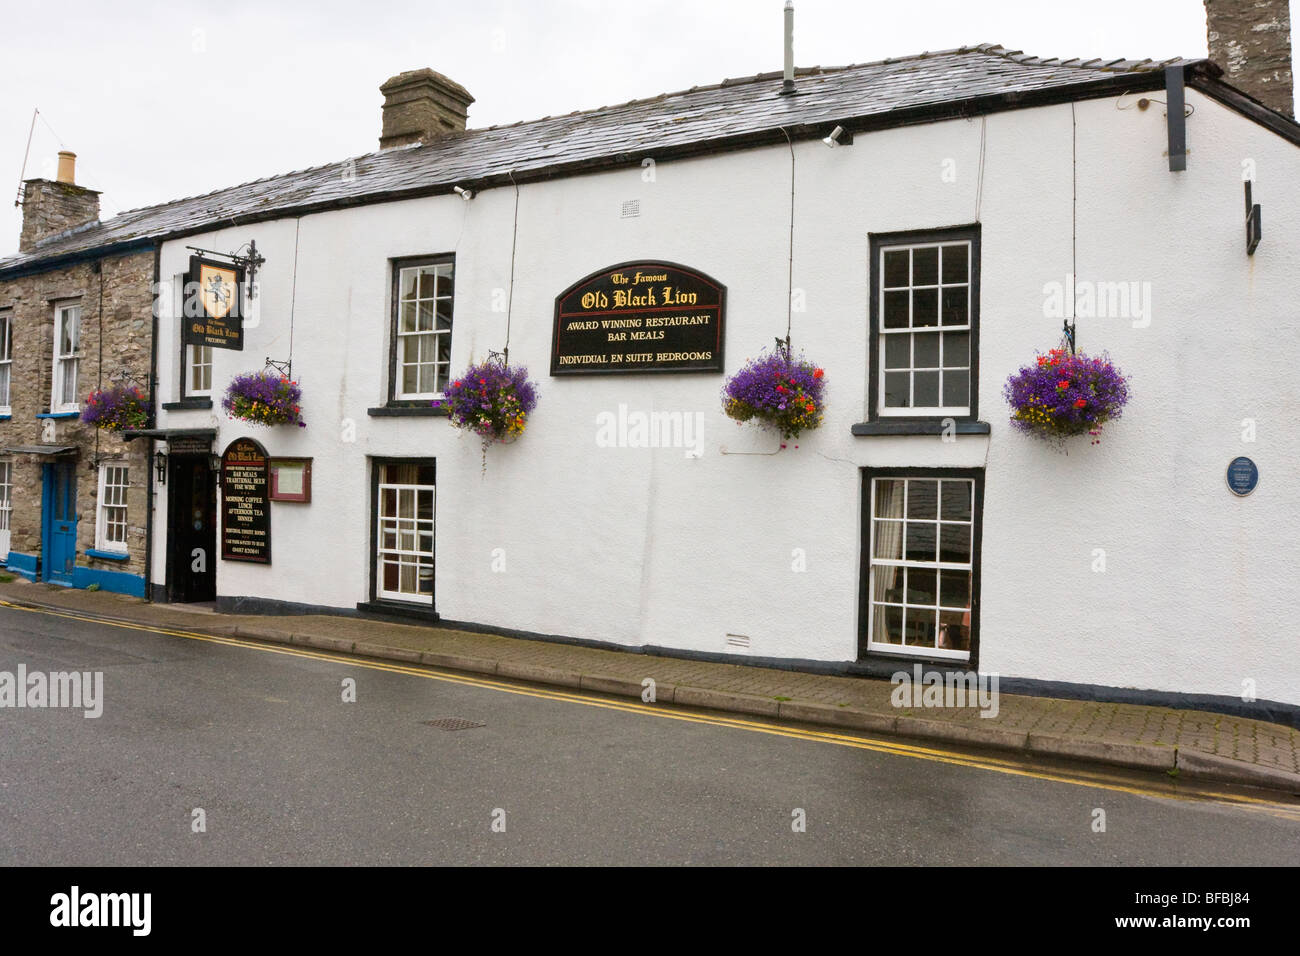 The Old Black Lion inn, Hay on Wye - Stock Image